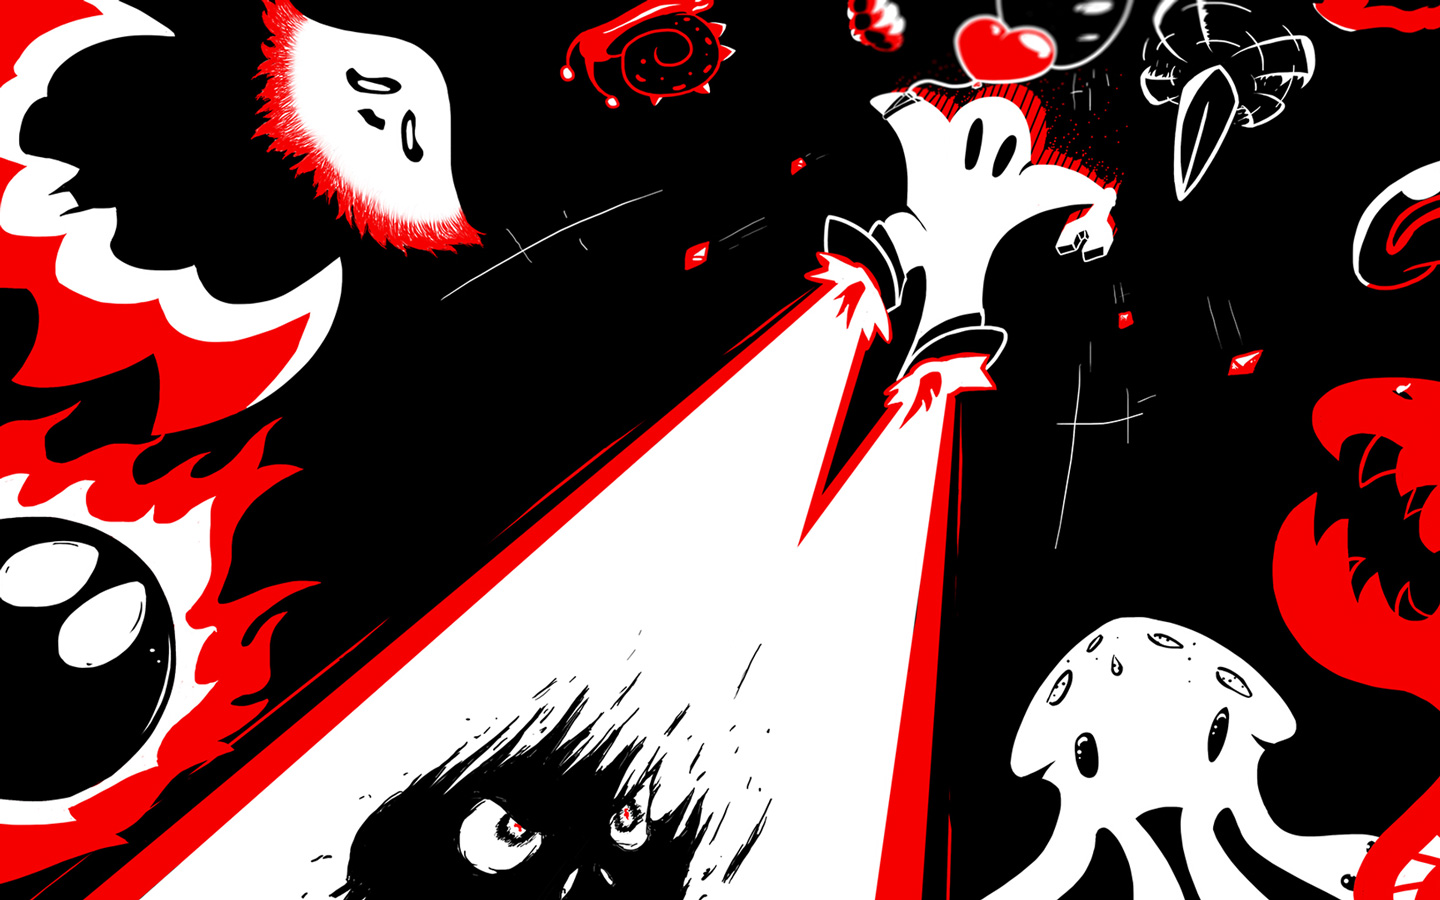 Free Downwell Wallpaper in 1440x900